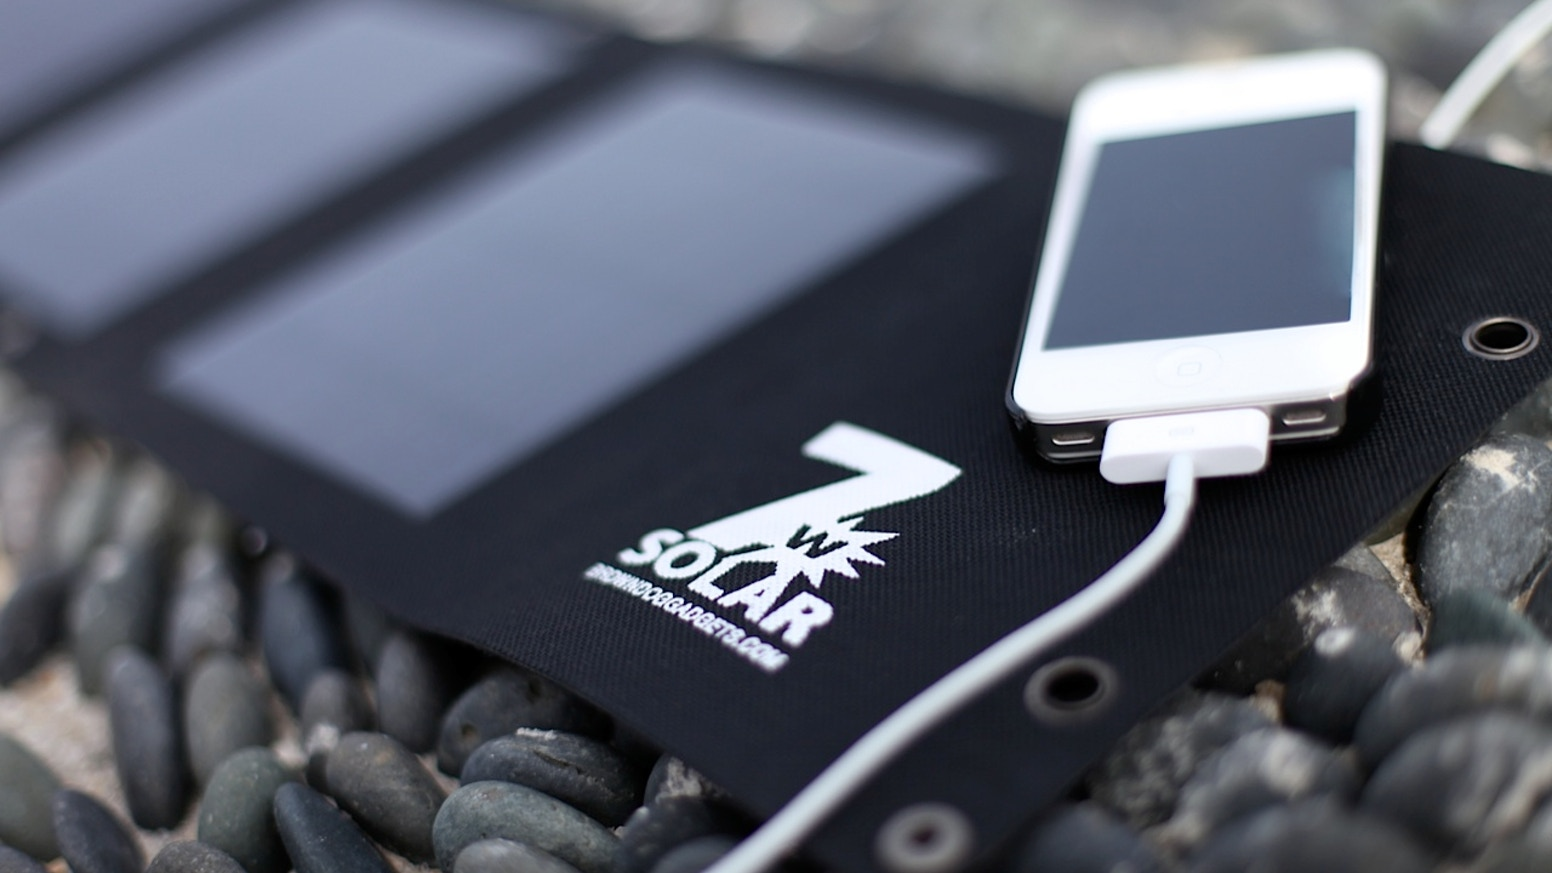 Folding Usb Solar Cell By Brown Dog Gadgets Kickstarter Battery Charger Sterling Power Usa 20 Amp 2 Bank An Inexpensive Easy To Use Practical Every Day System For